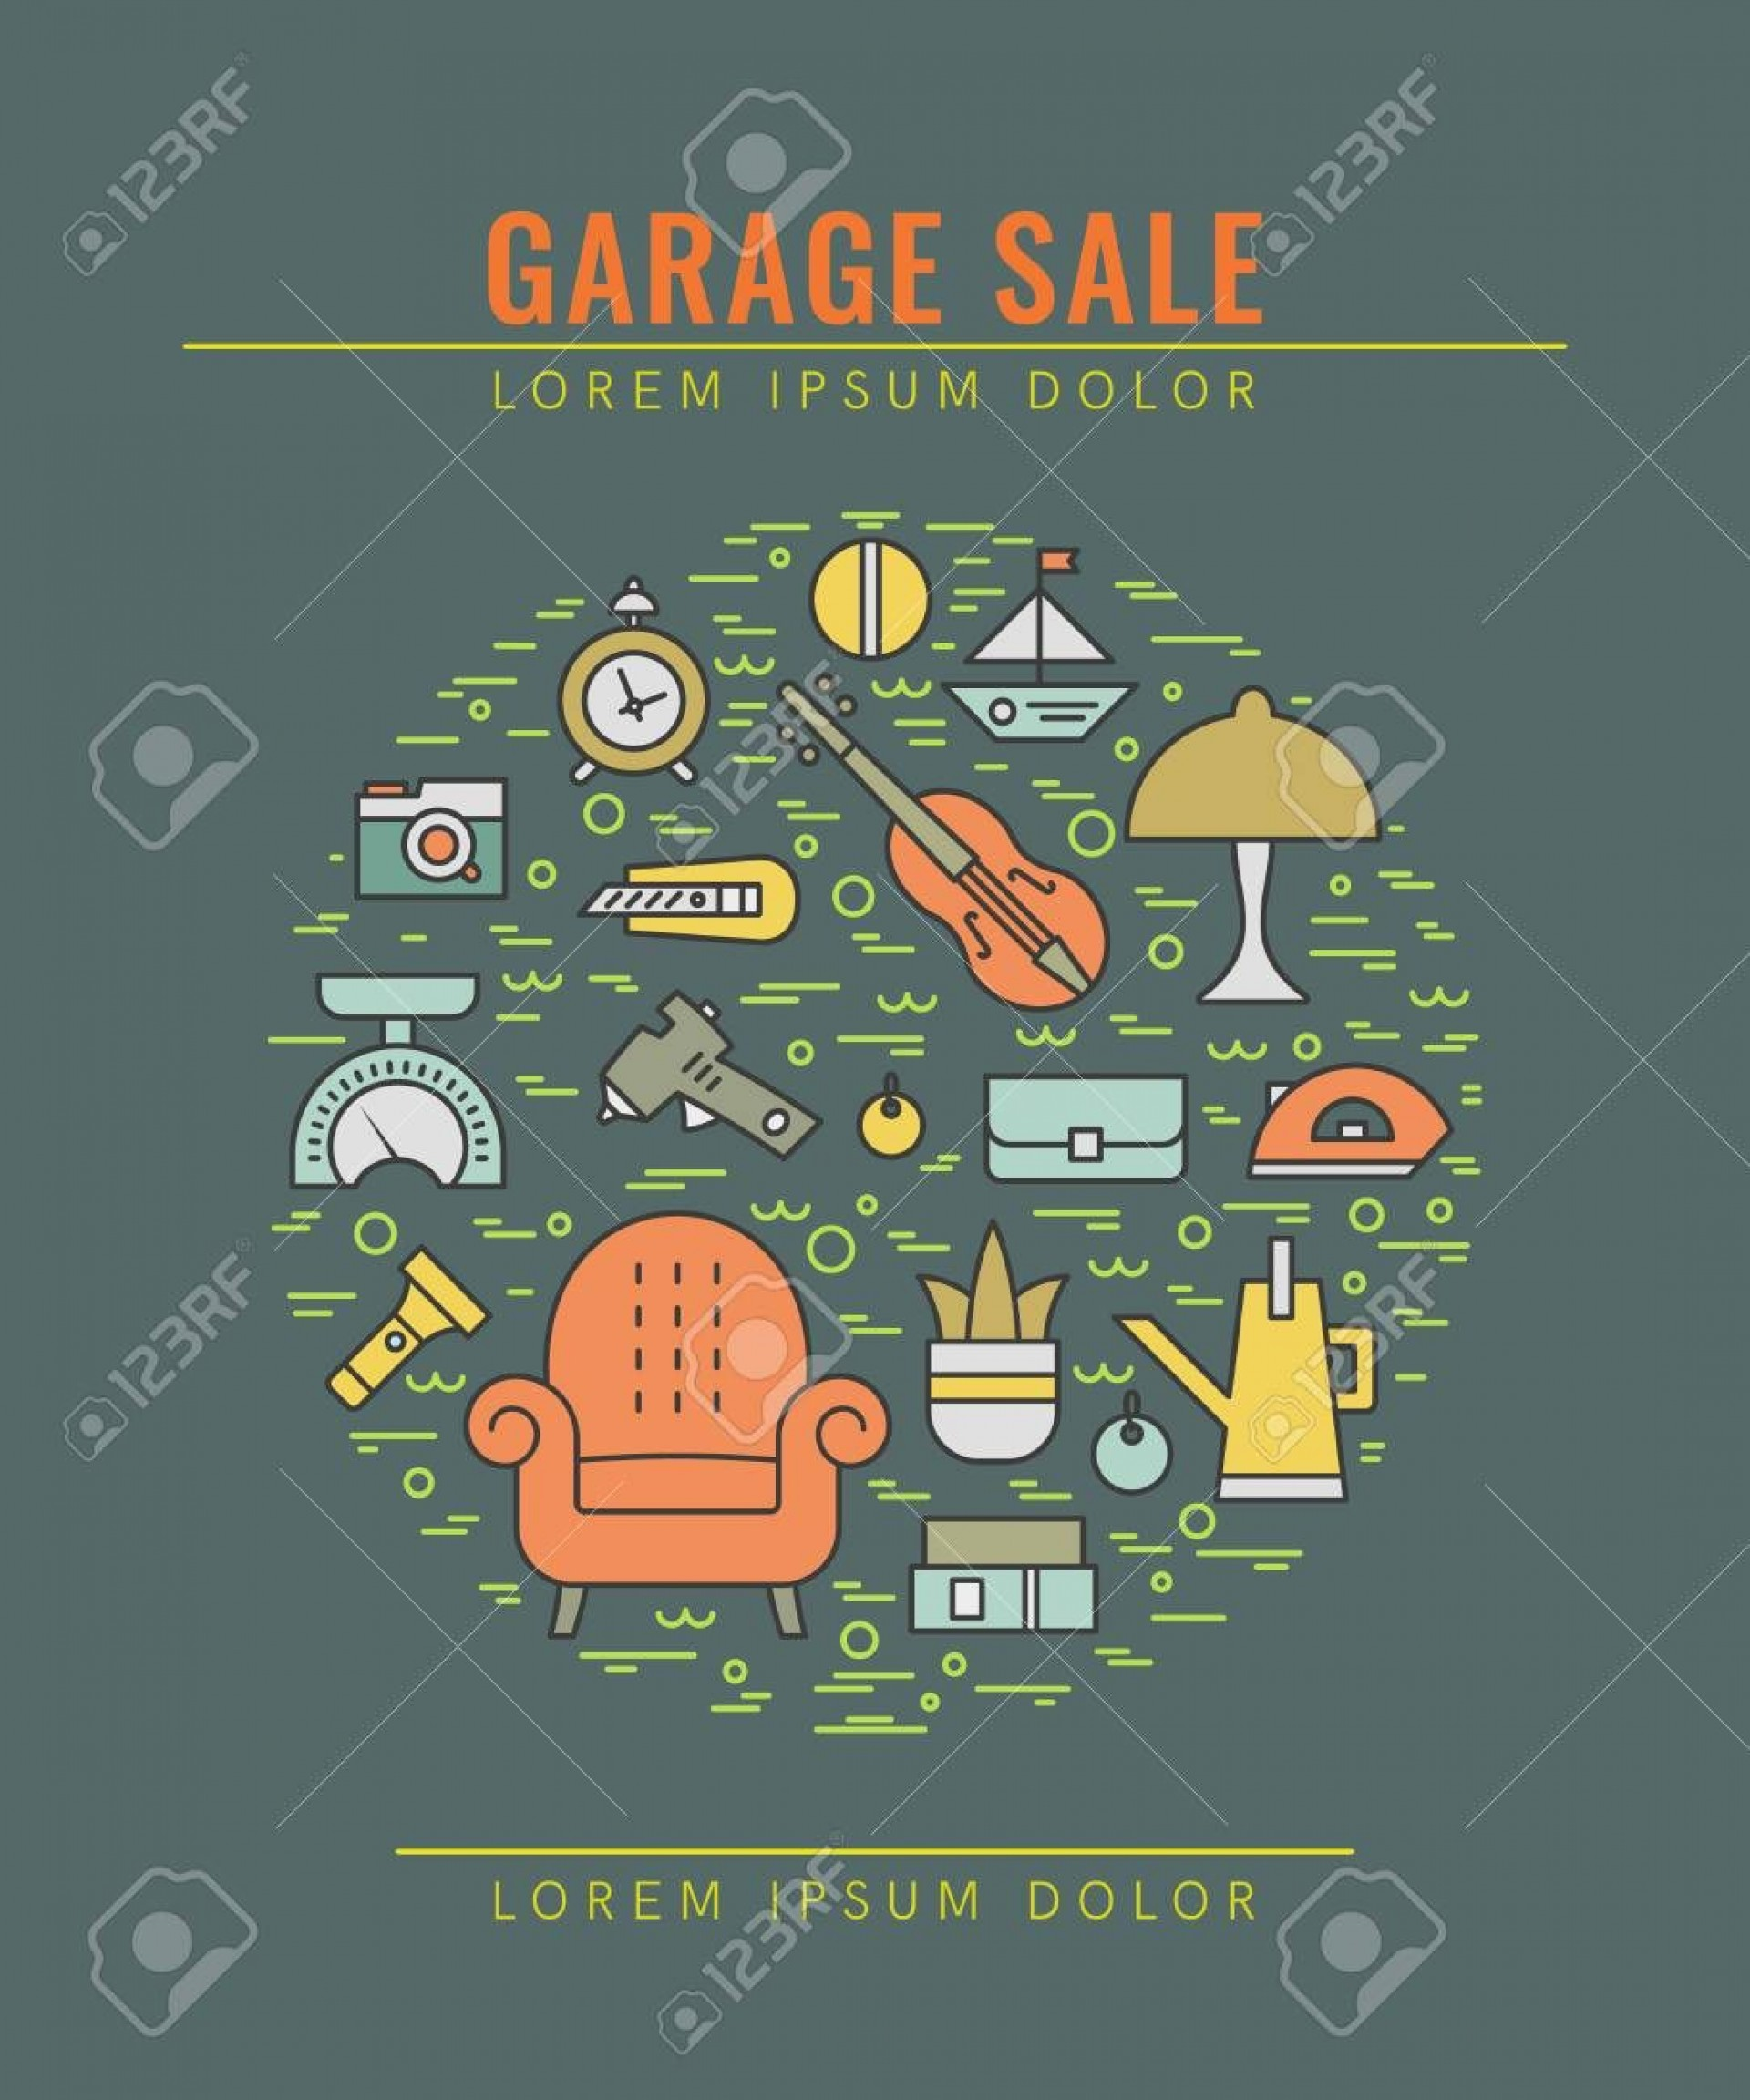 004 Exceptional Yard Sale Flyer Template Free Picture  Community Garage1920